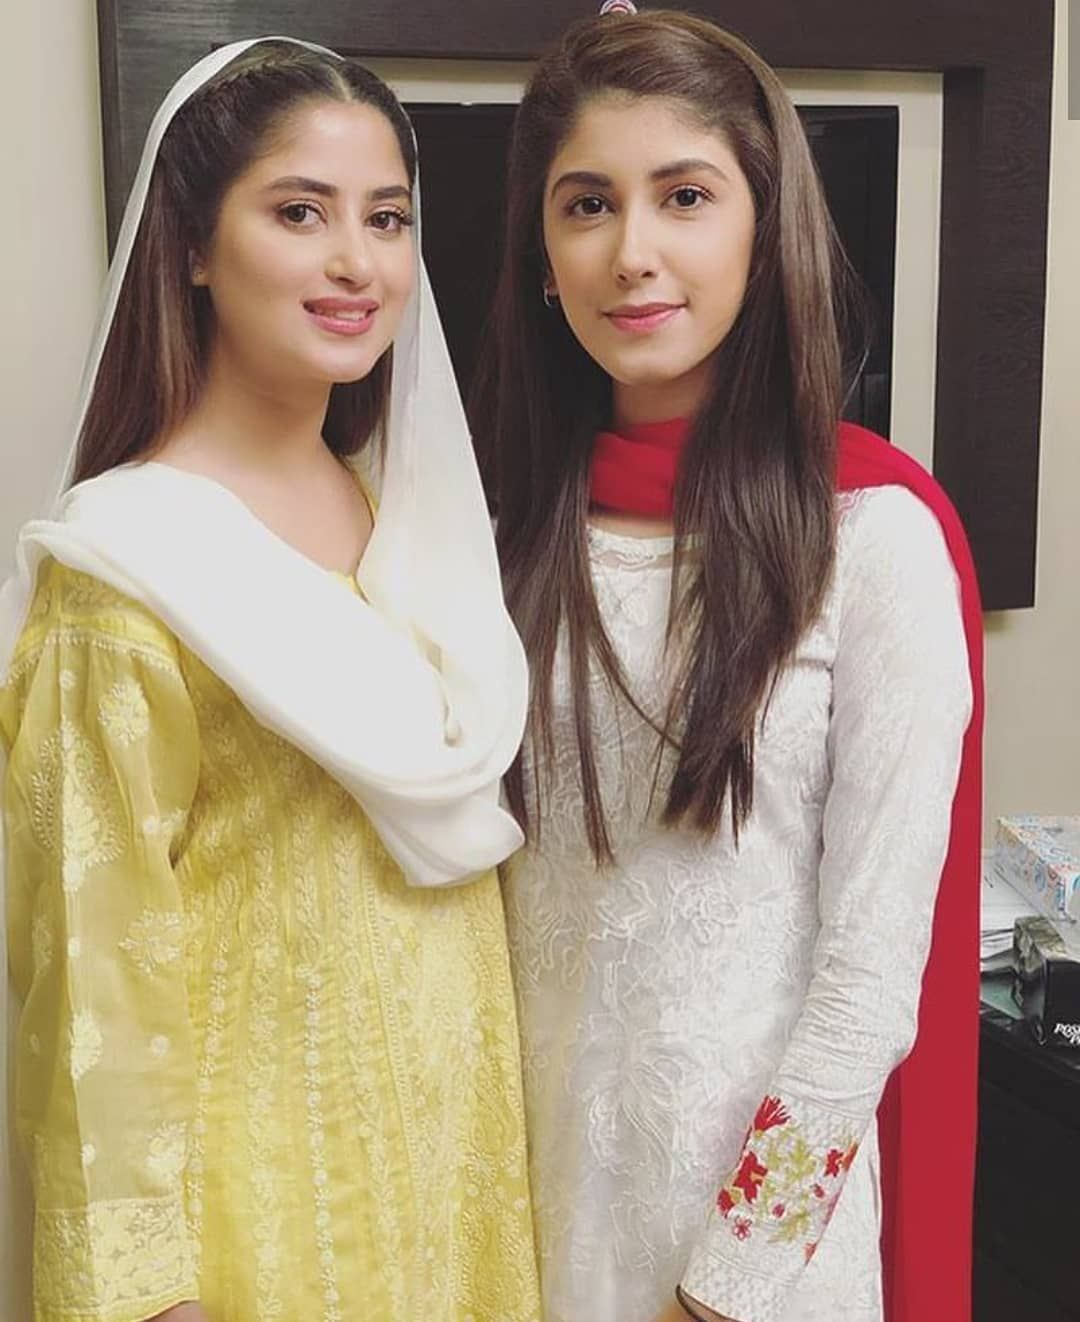 78cac353a1 Click of @sajalaly from the set of upcoming drama serial #Alif .#sajalaly